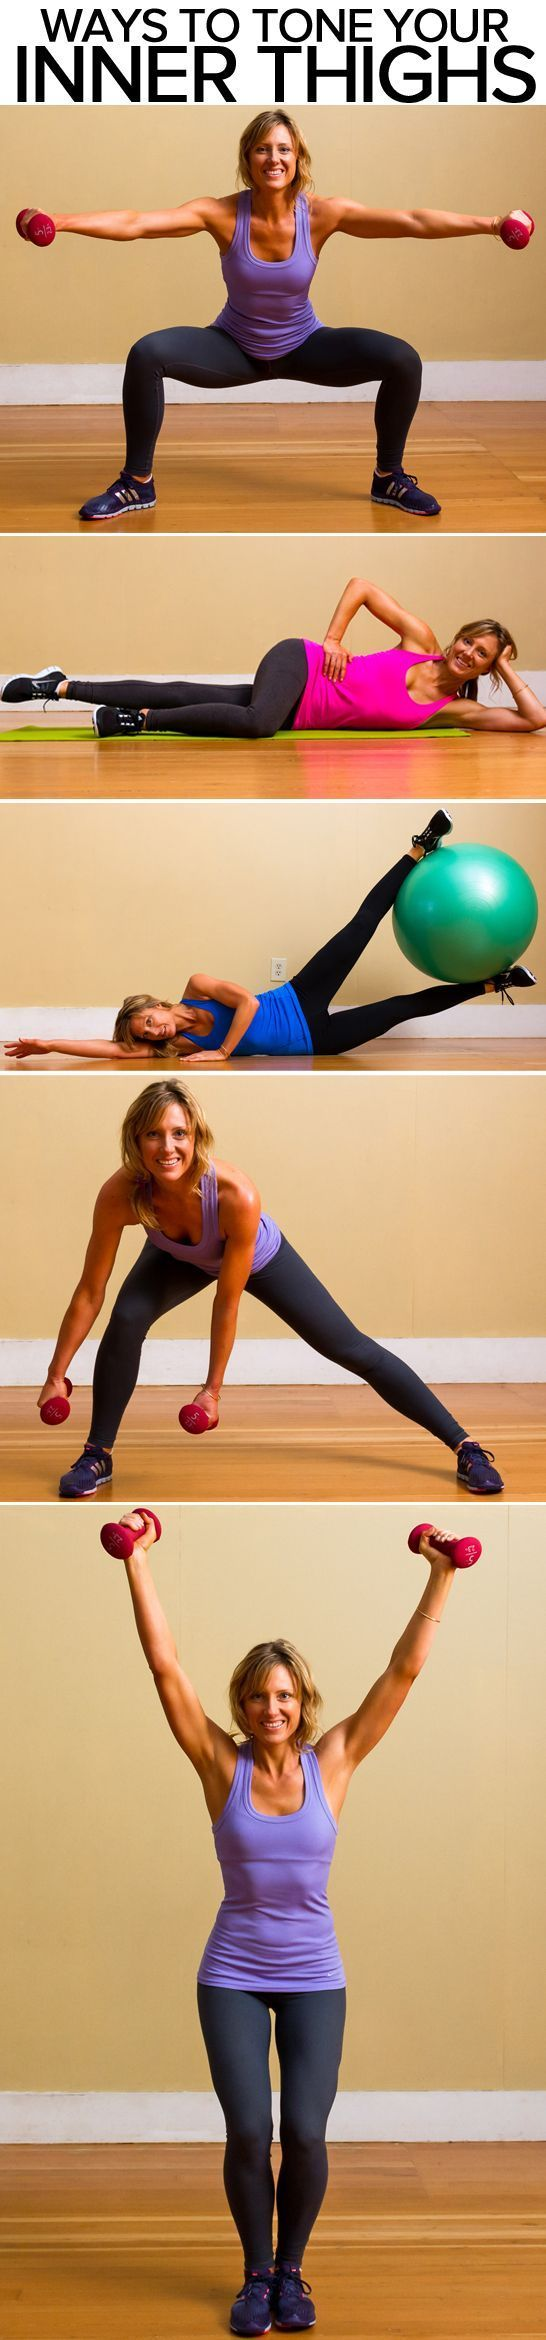 A toned inner thigh is a healthy inner thigh - attractive and strong. Show yours some love with these 18 inner-thigh exercises to get nicely shaped legs Source: www.popsugar.com